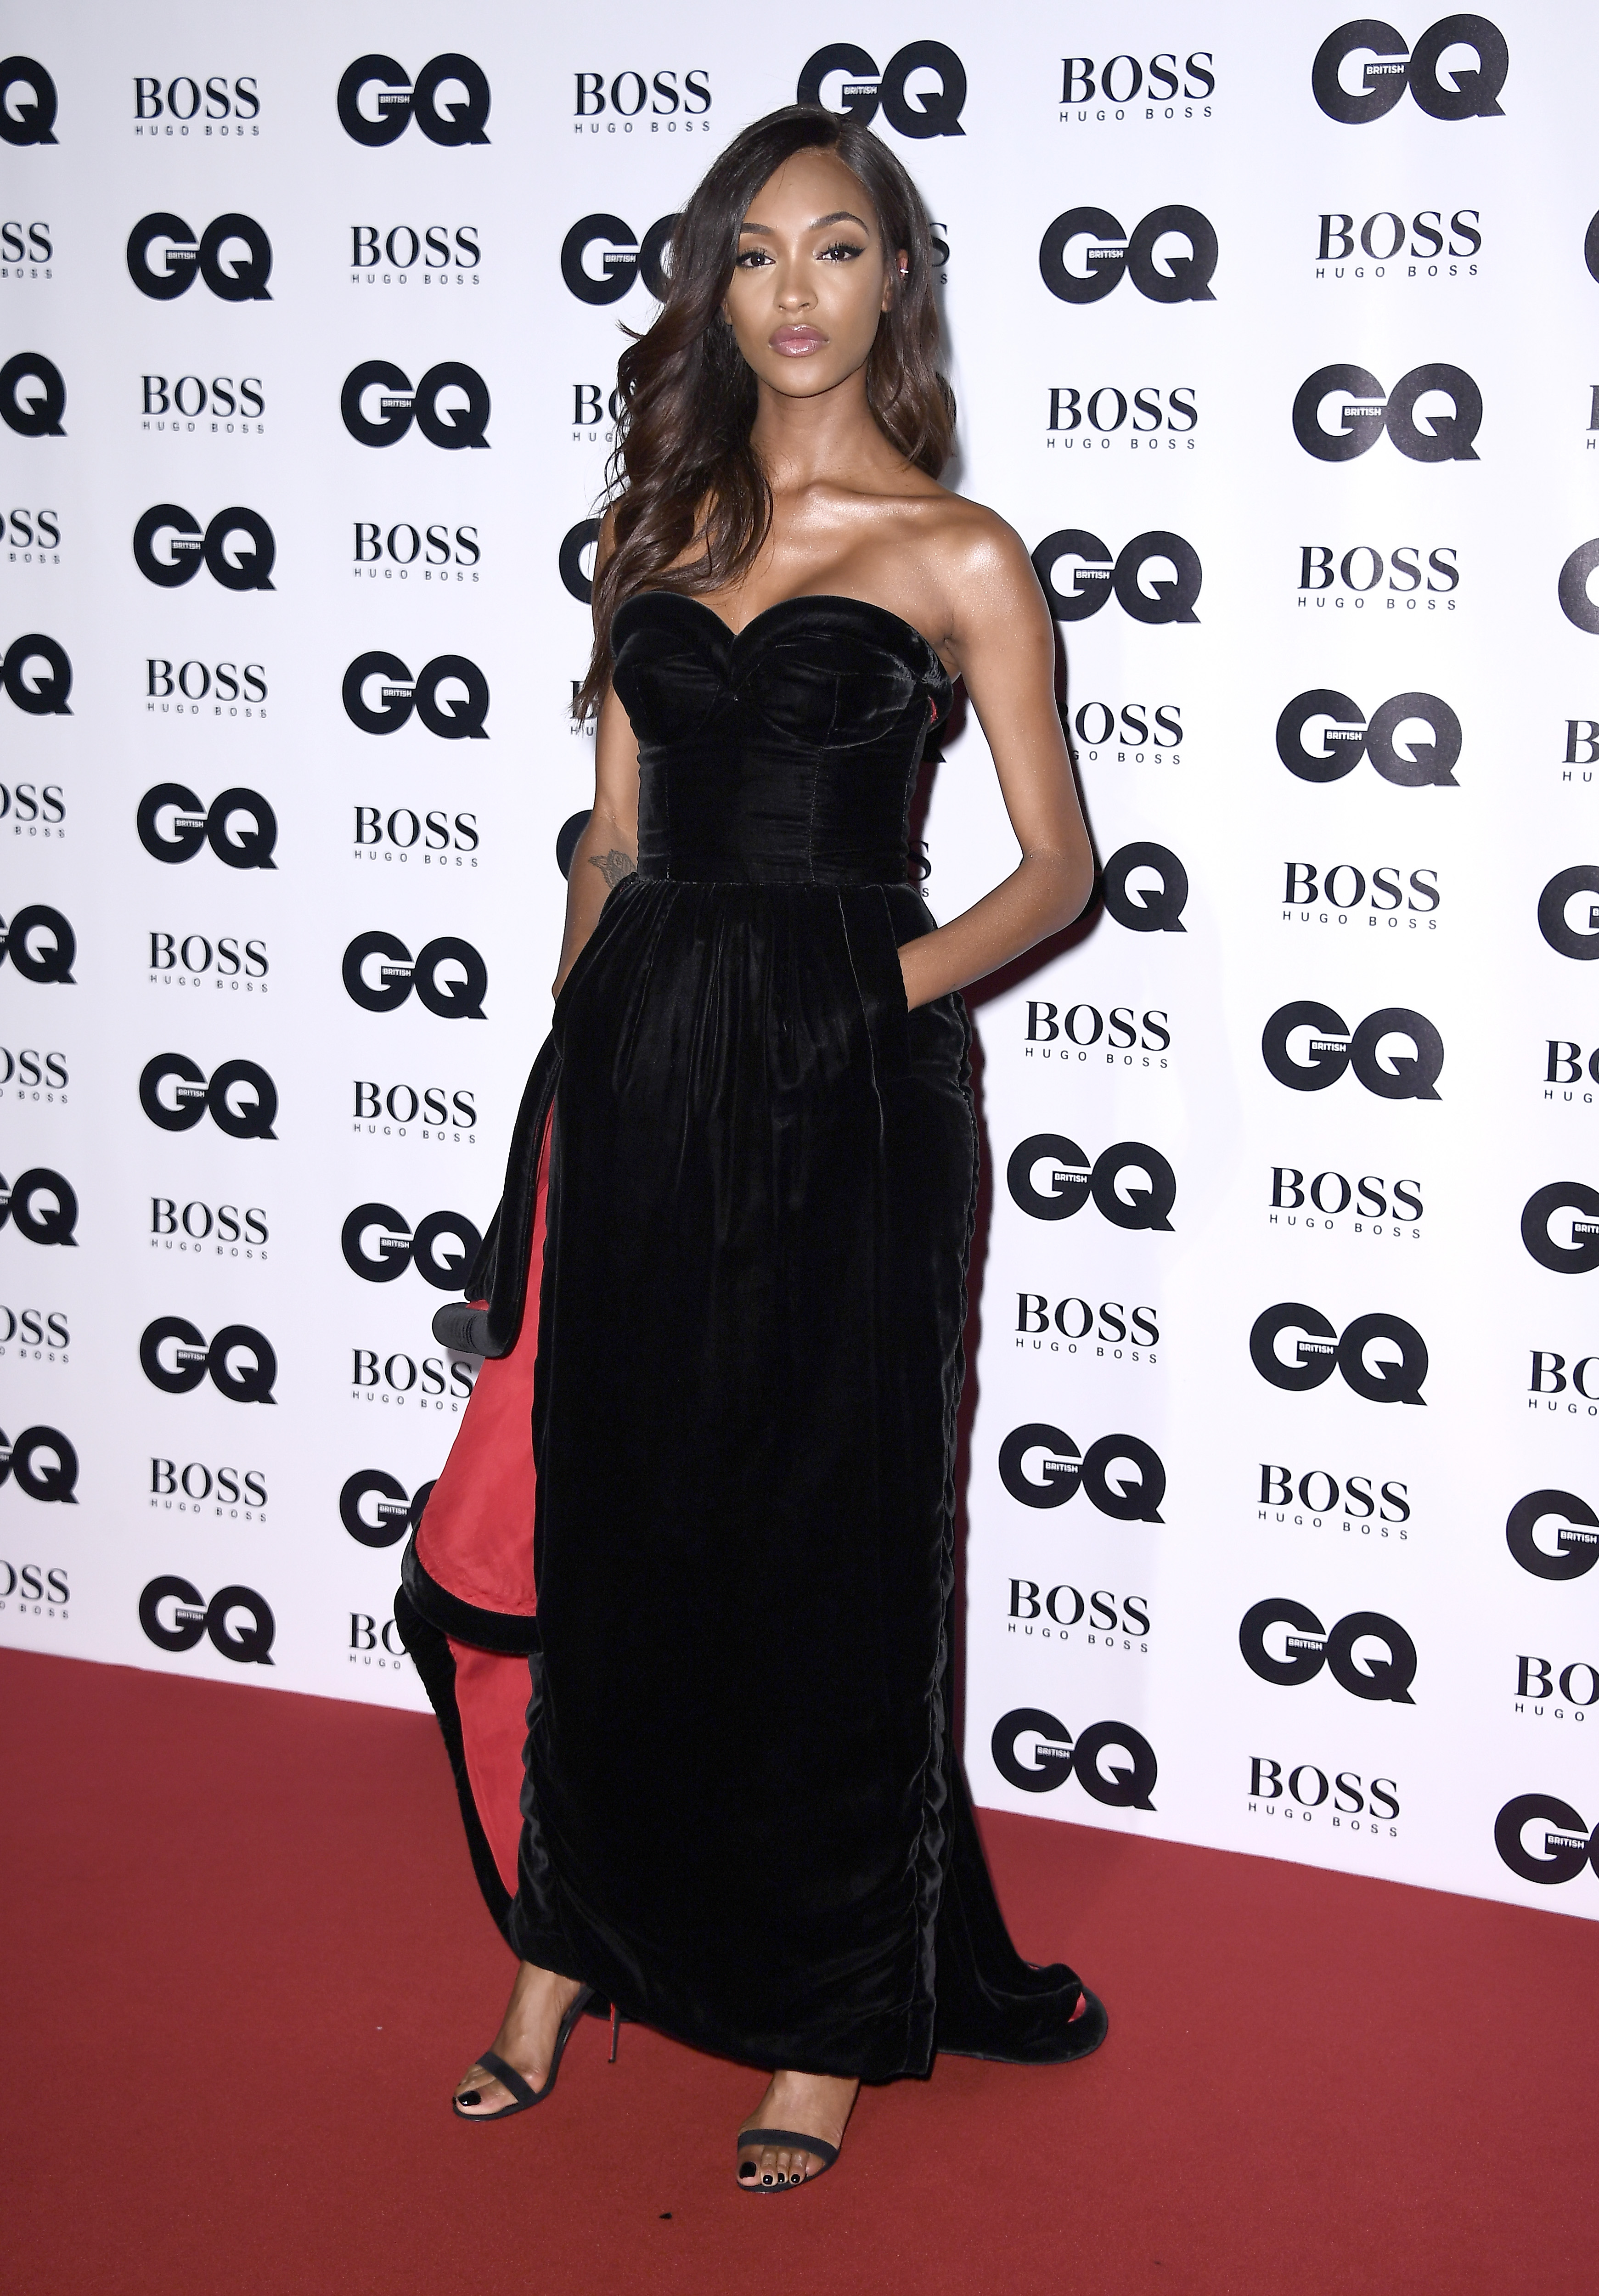 LONDON, ENGLAND - SEPTEMBER 05:  Jourdan Dunn attends the GQ Men Of The Year Awards at the Tate Modern on September 5, 2017 in London, England.  (Photo by Gareth Cattermole/Getty Images)